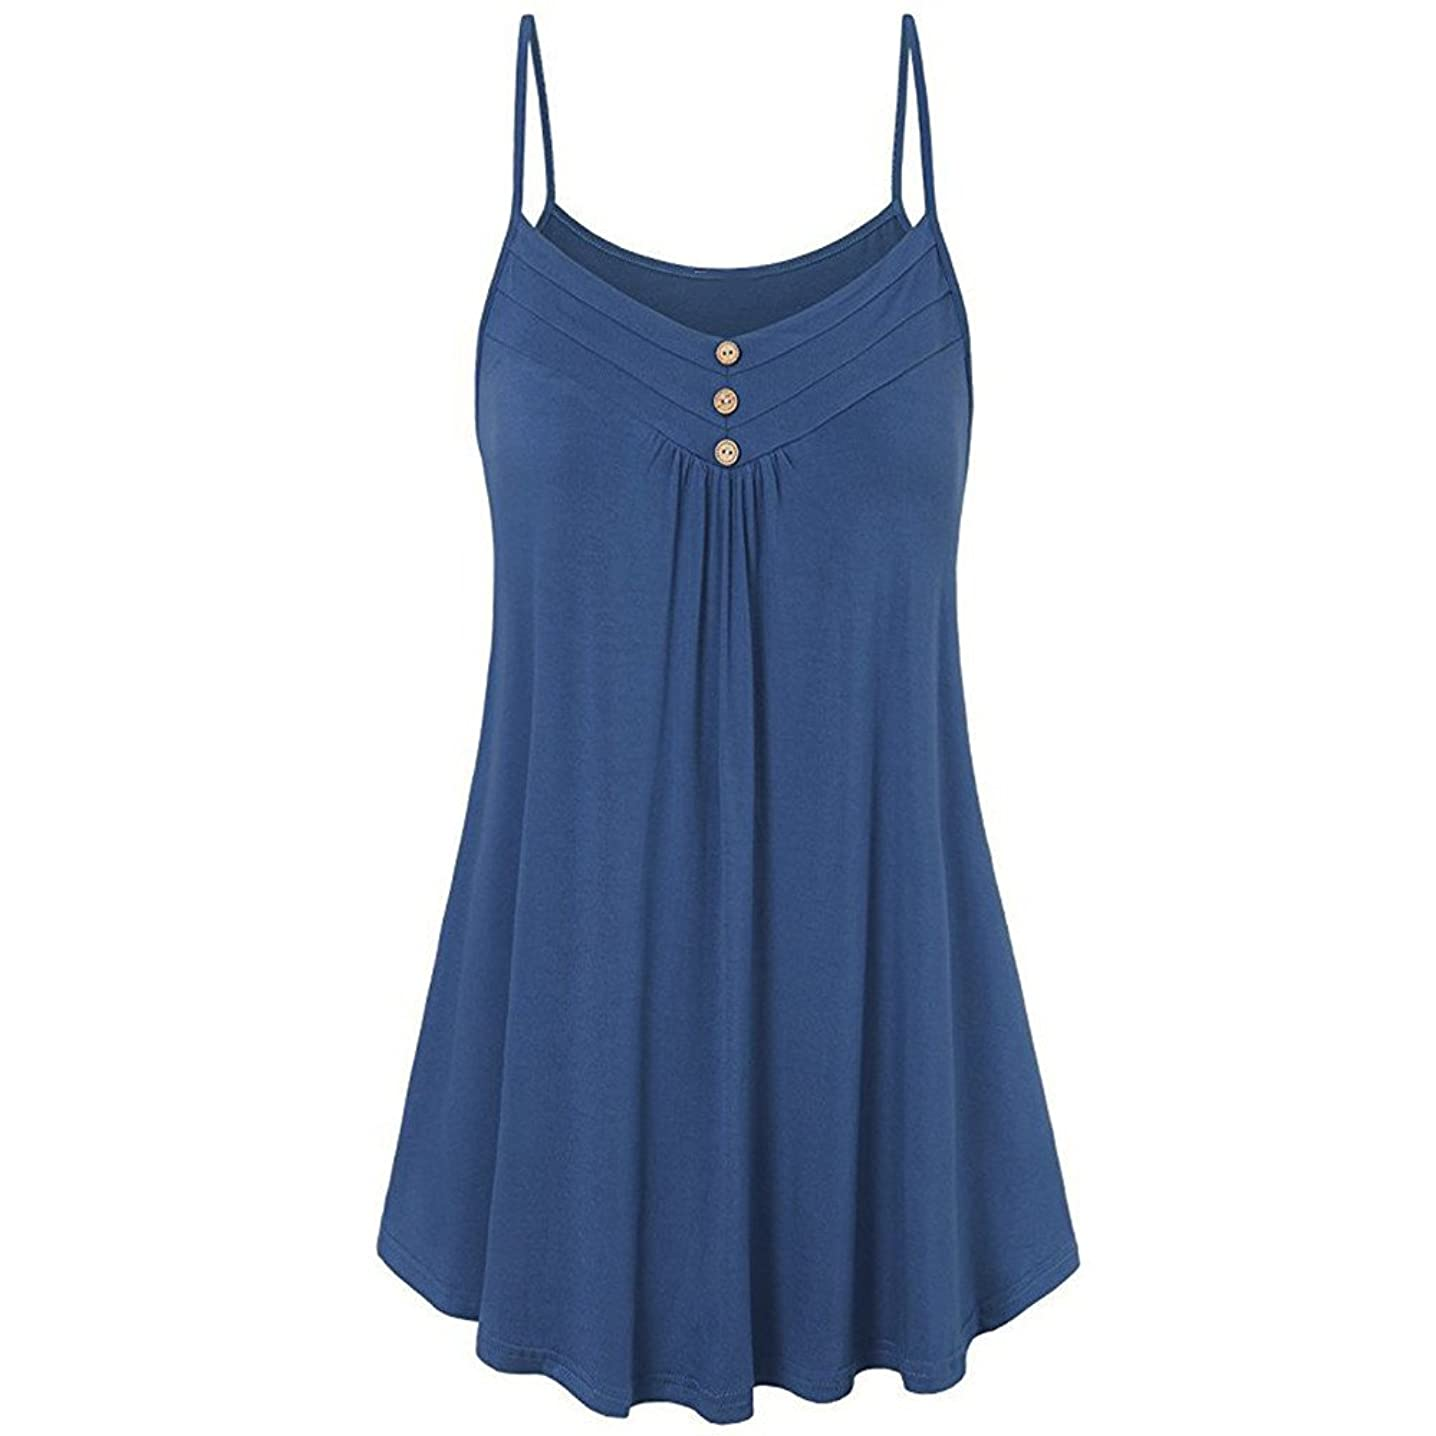 HGWXX7 Women Summer Casual Loose Button V Neck Solid Cami Vest Blouse Tank Tops